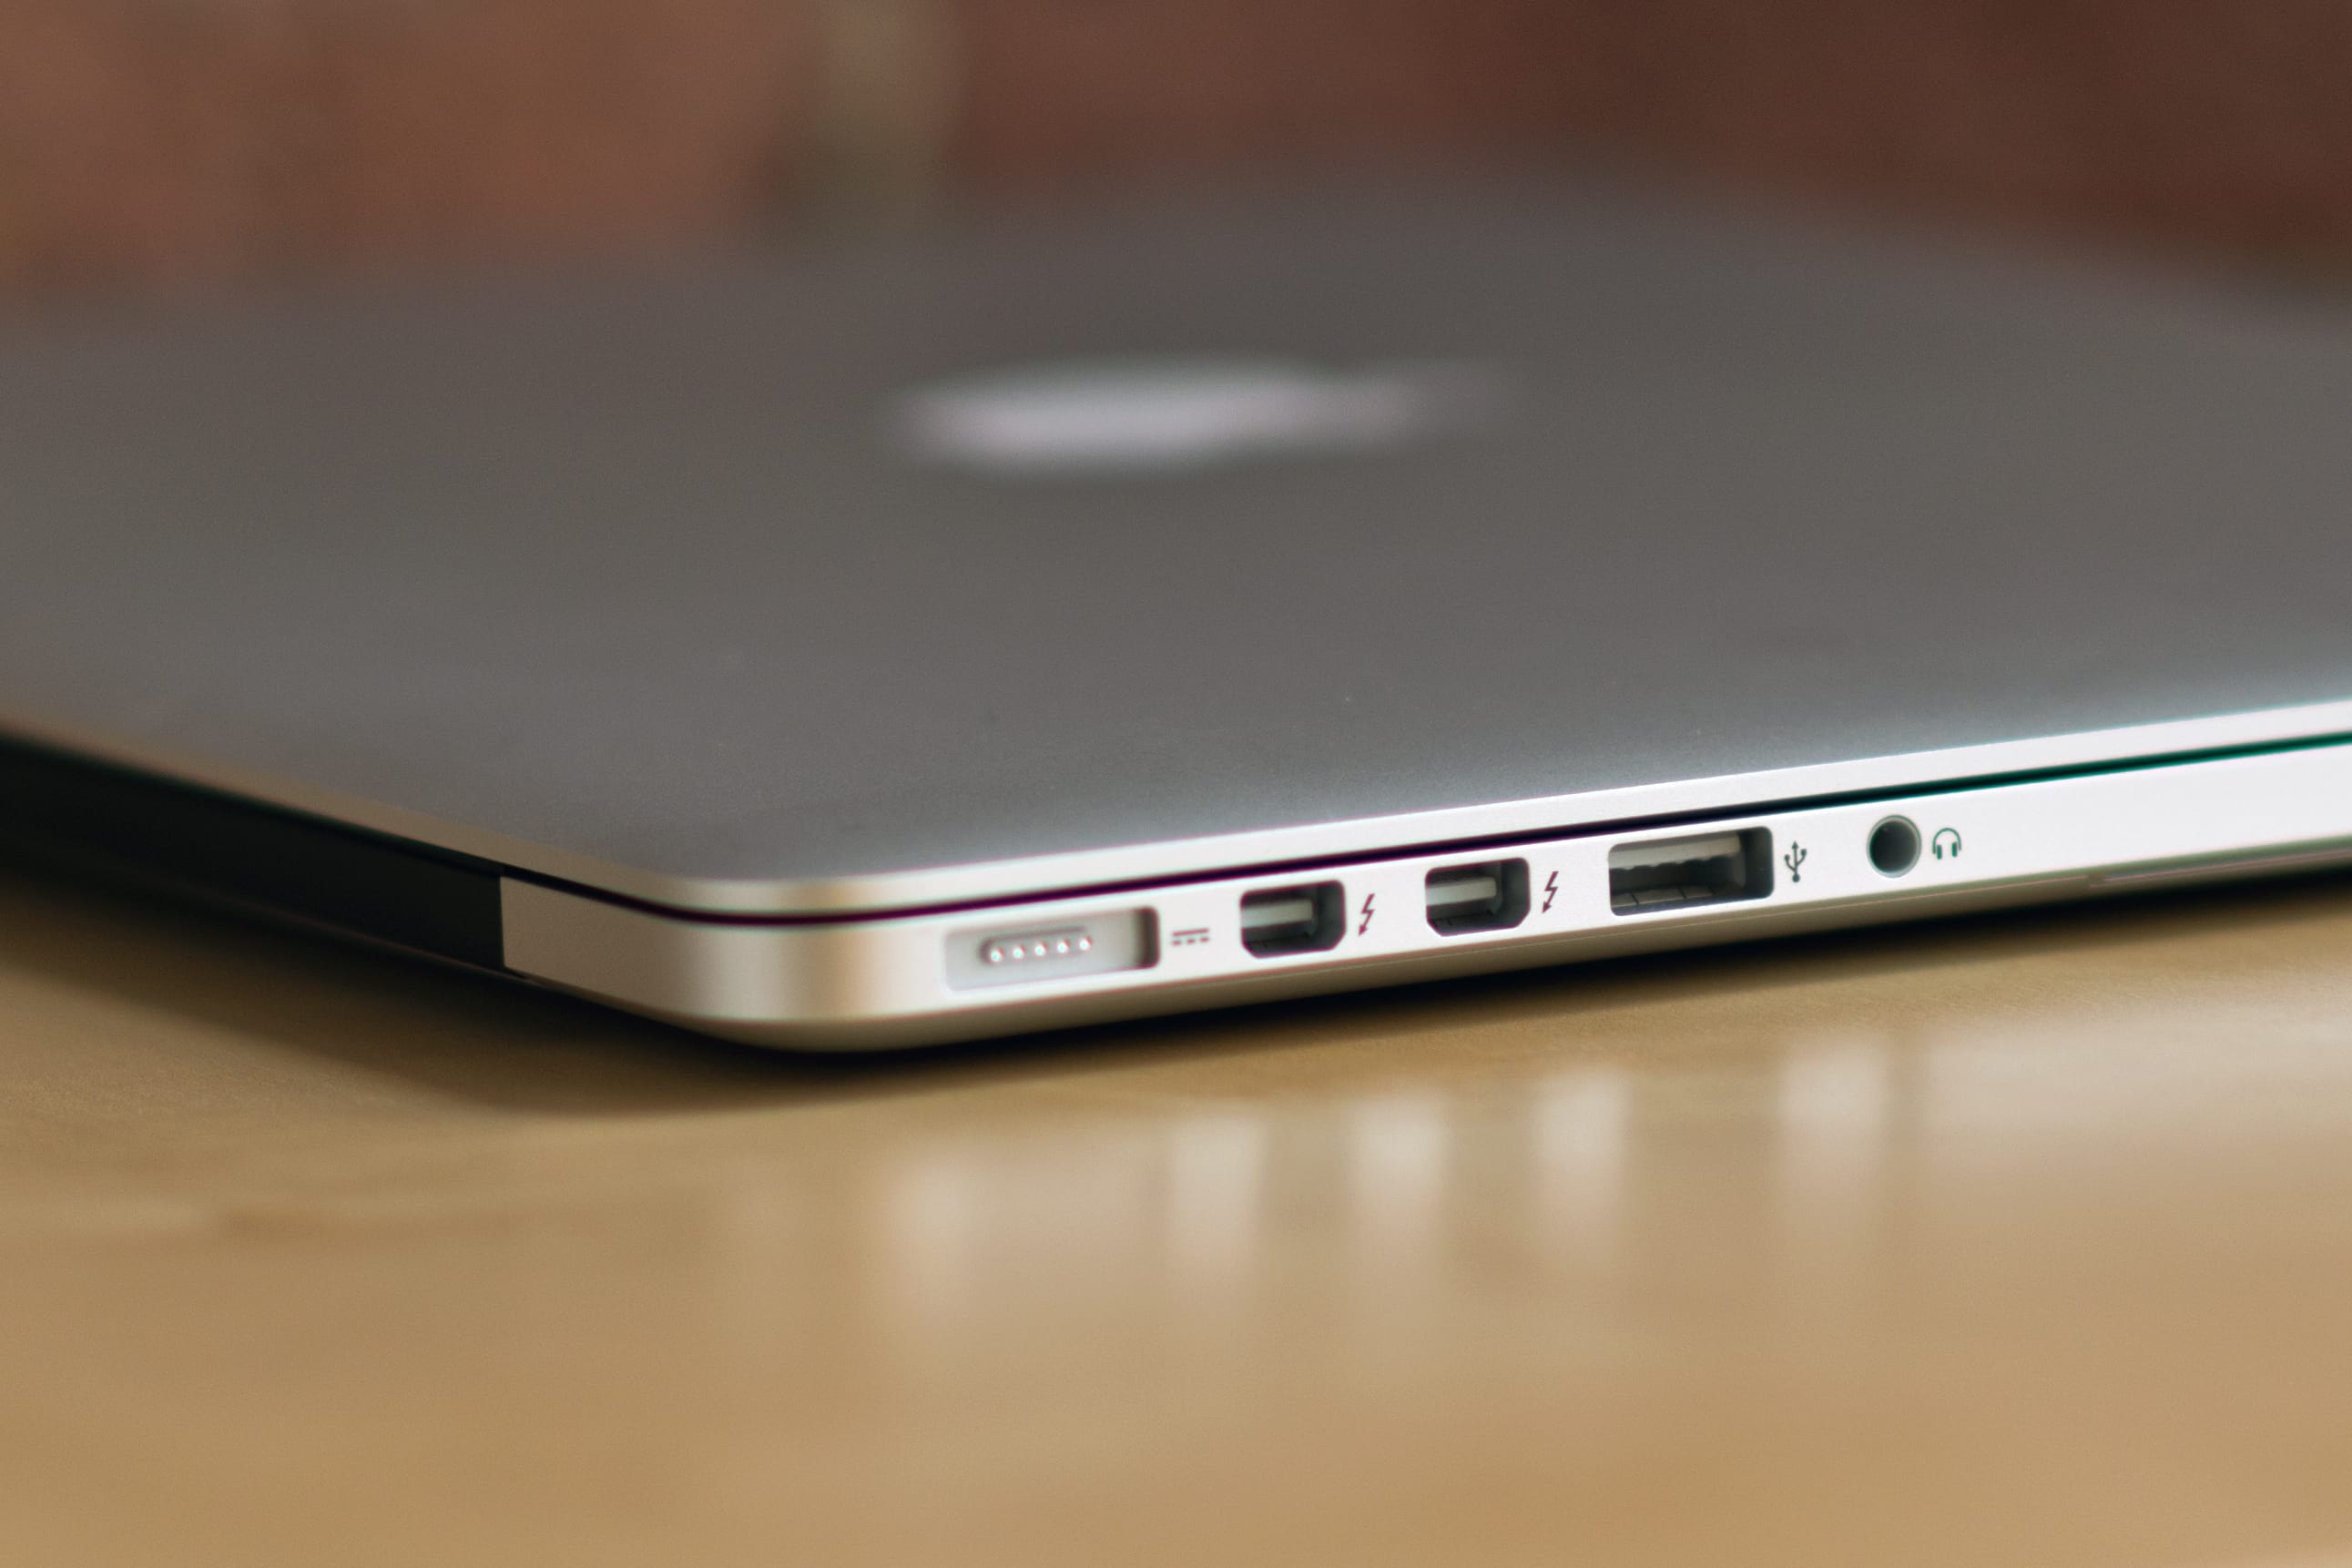 A closer look at the MacBook Pro with Retina Display's ports.